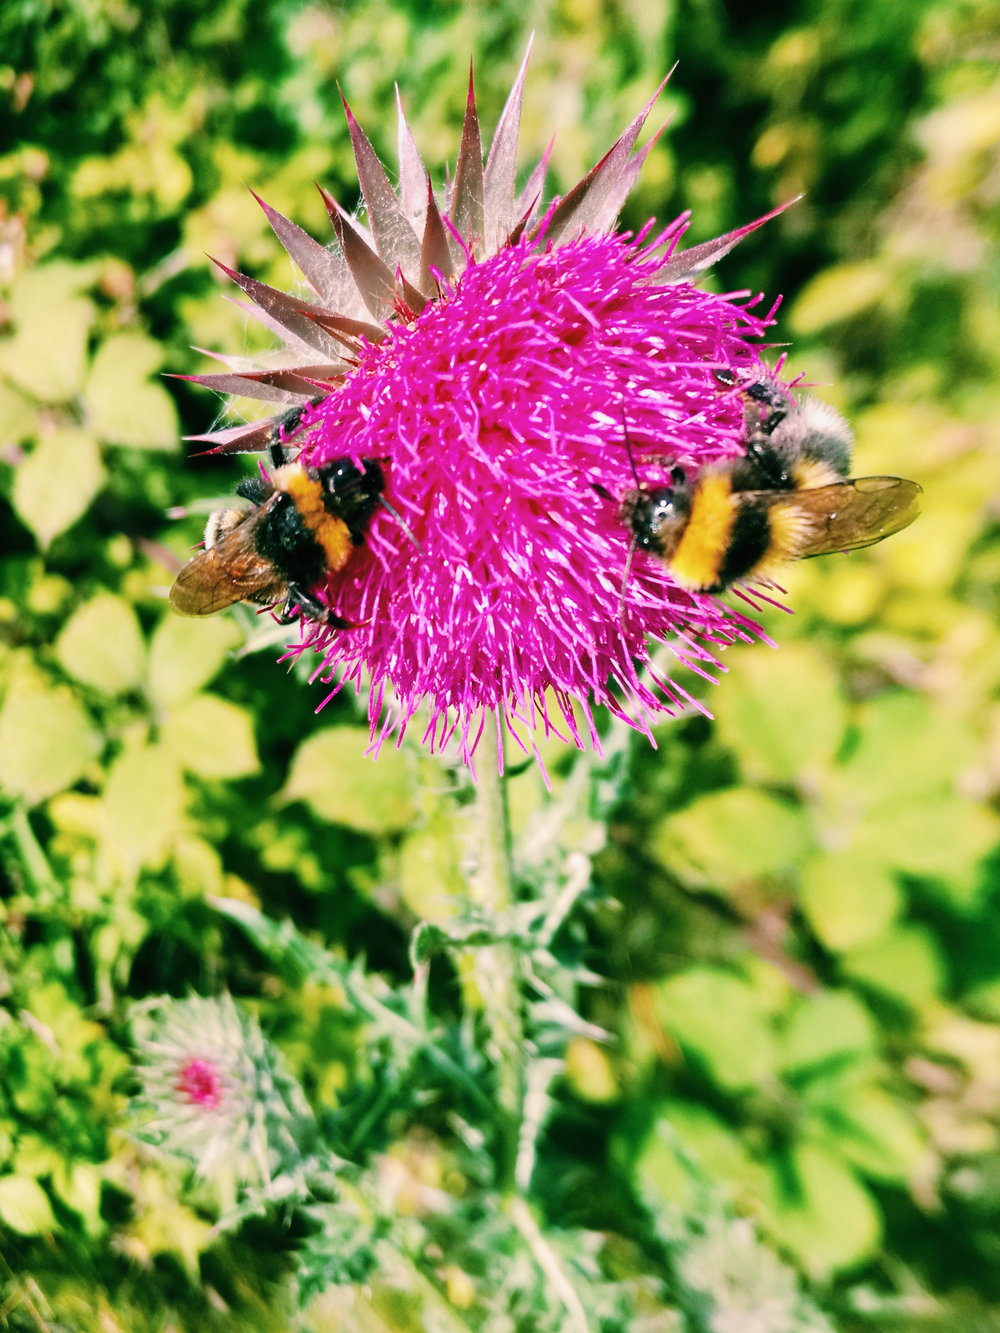 thistle Distel bumblebee Hummel Natur Sonne Sommer nature summer question group Gruppe Frage Antwort answer